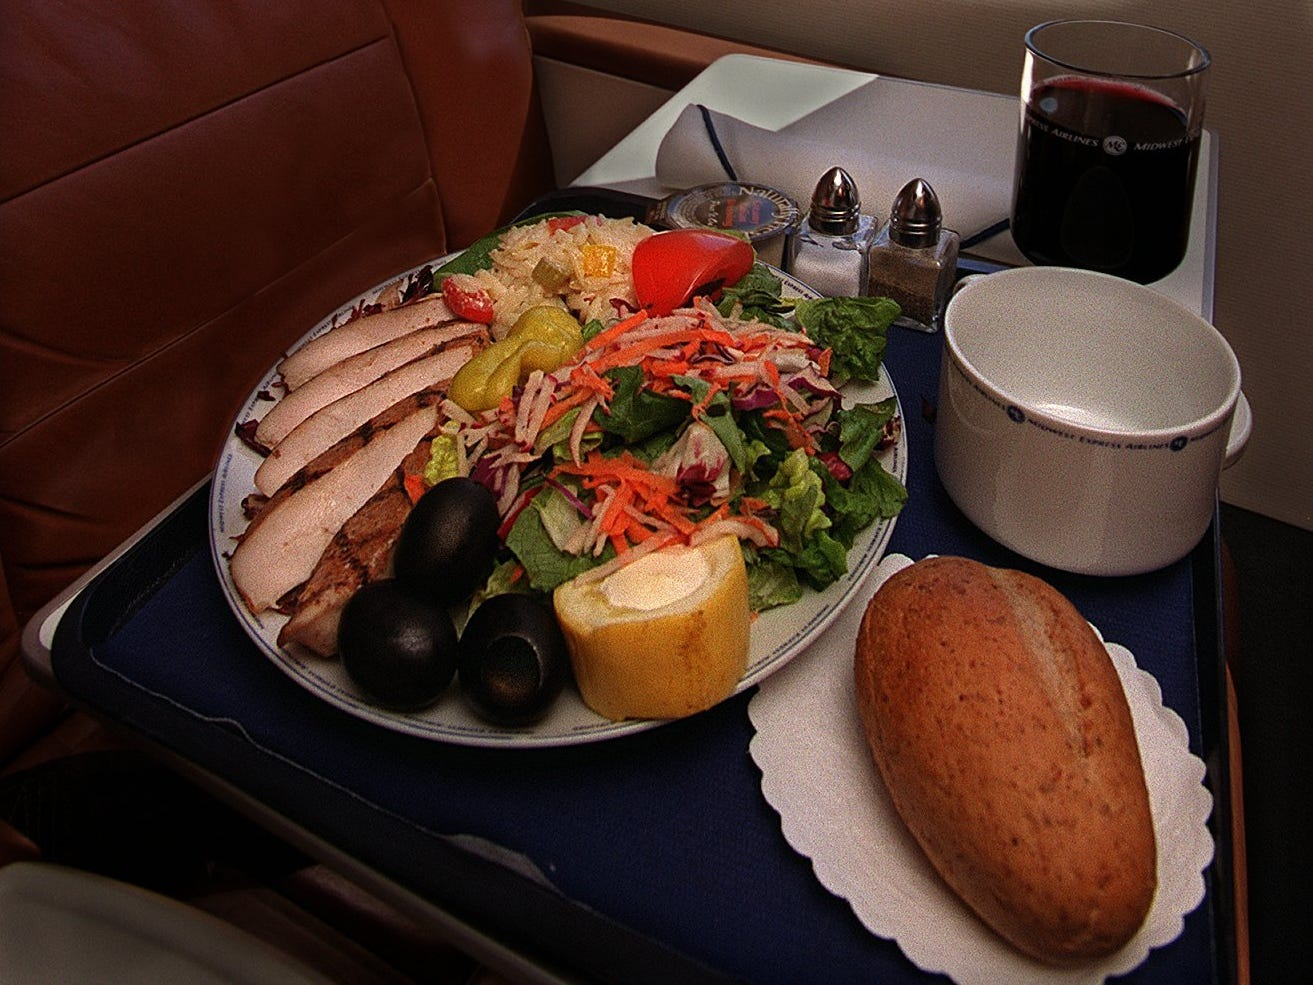 A typical meal is displayed on the tray of a Midwest Express Jet bound for Washington, D.C., April 25, 2000. Meals are prepared nearby and put on the flight about an hour before take off.